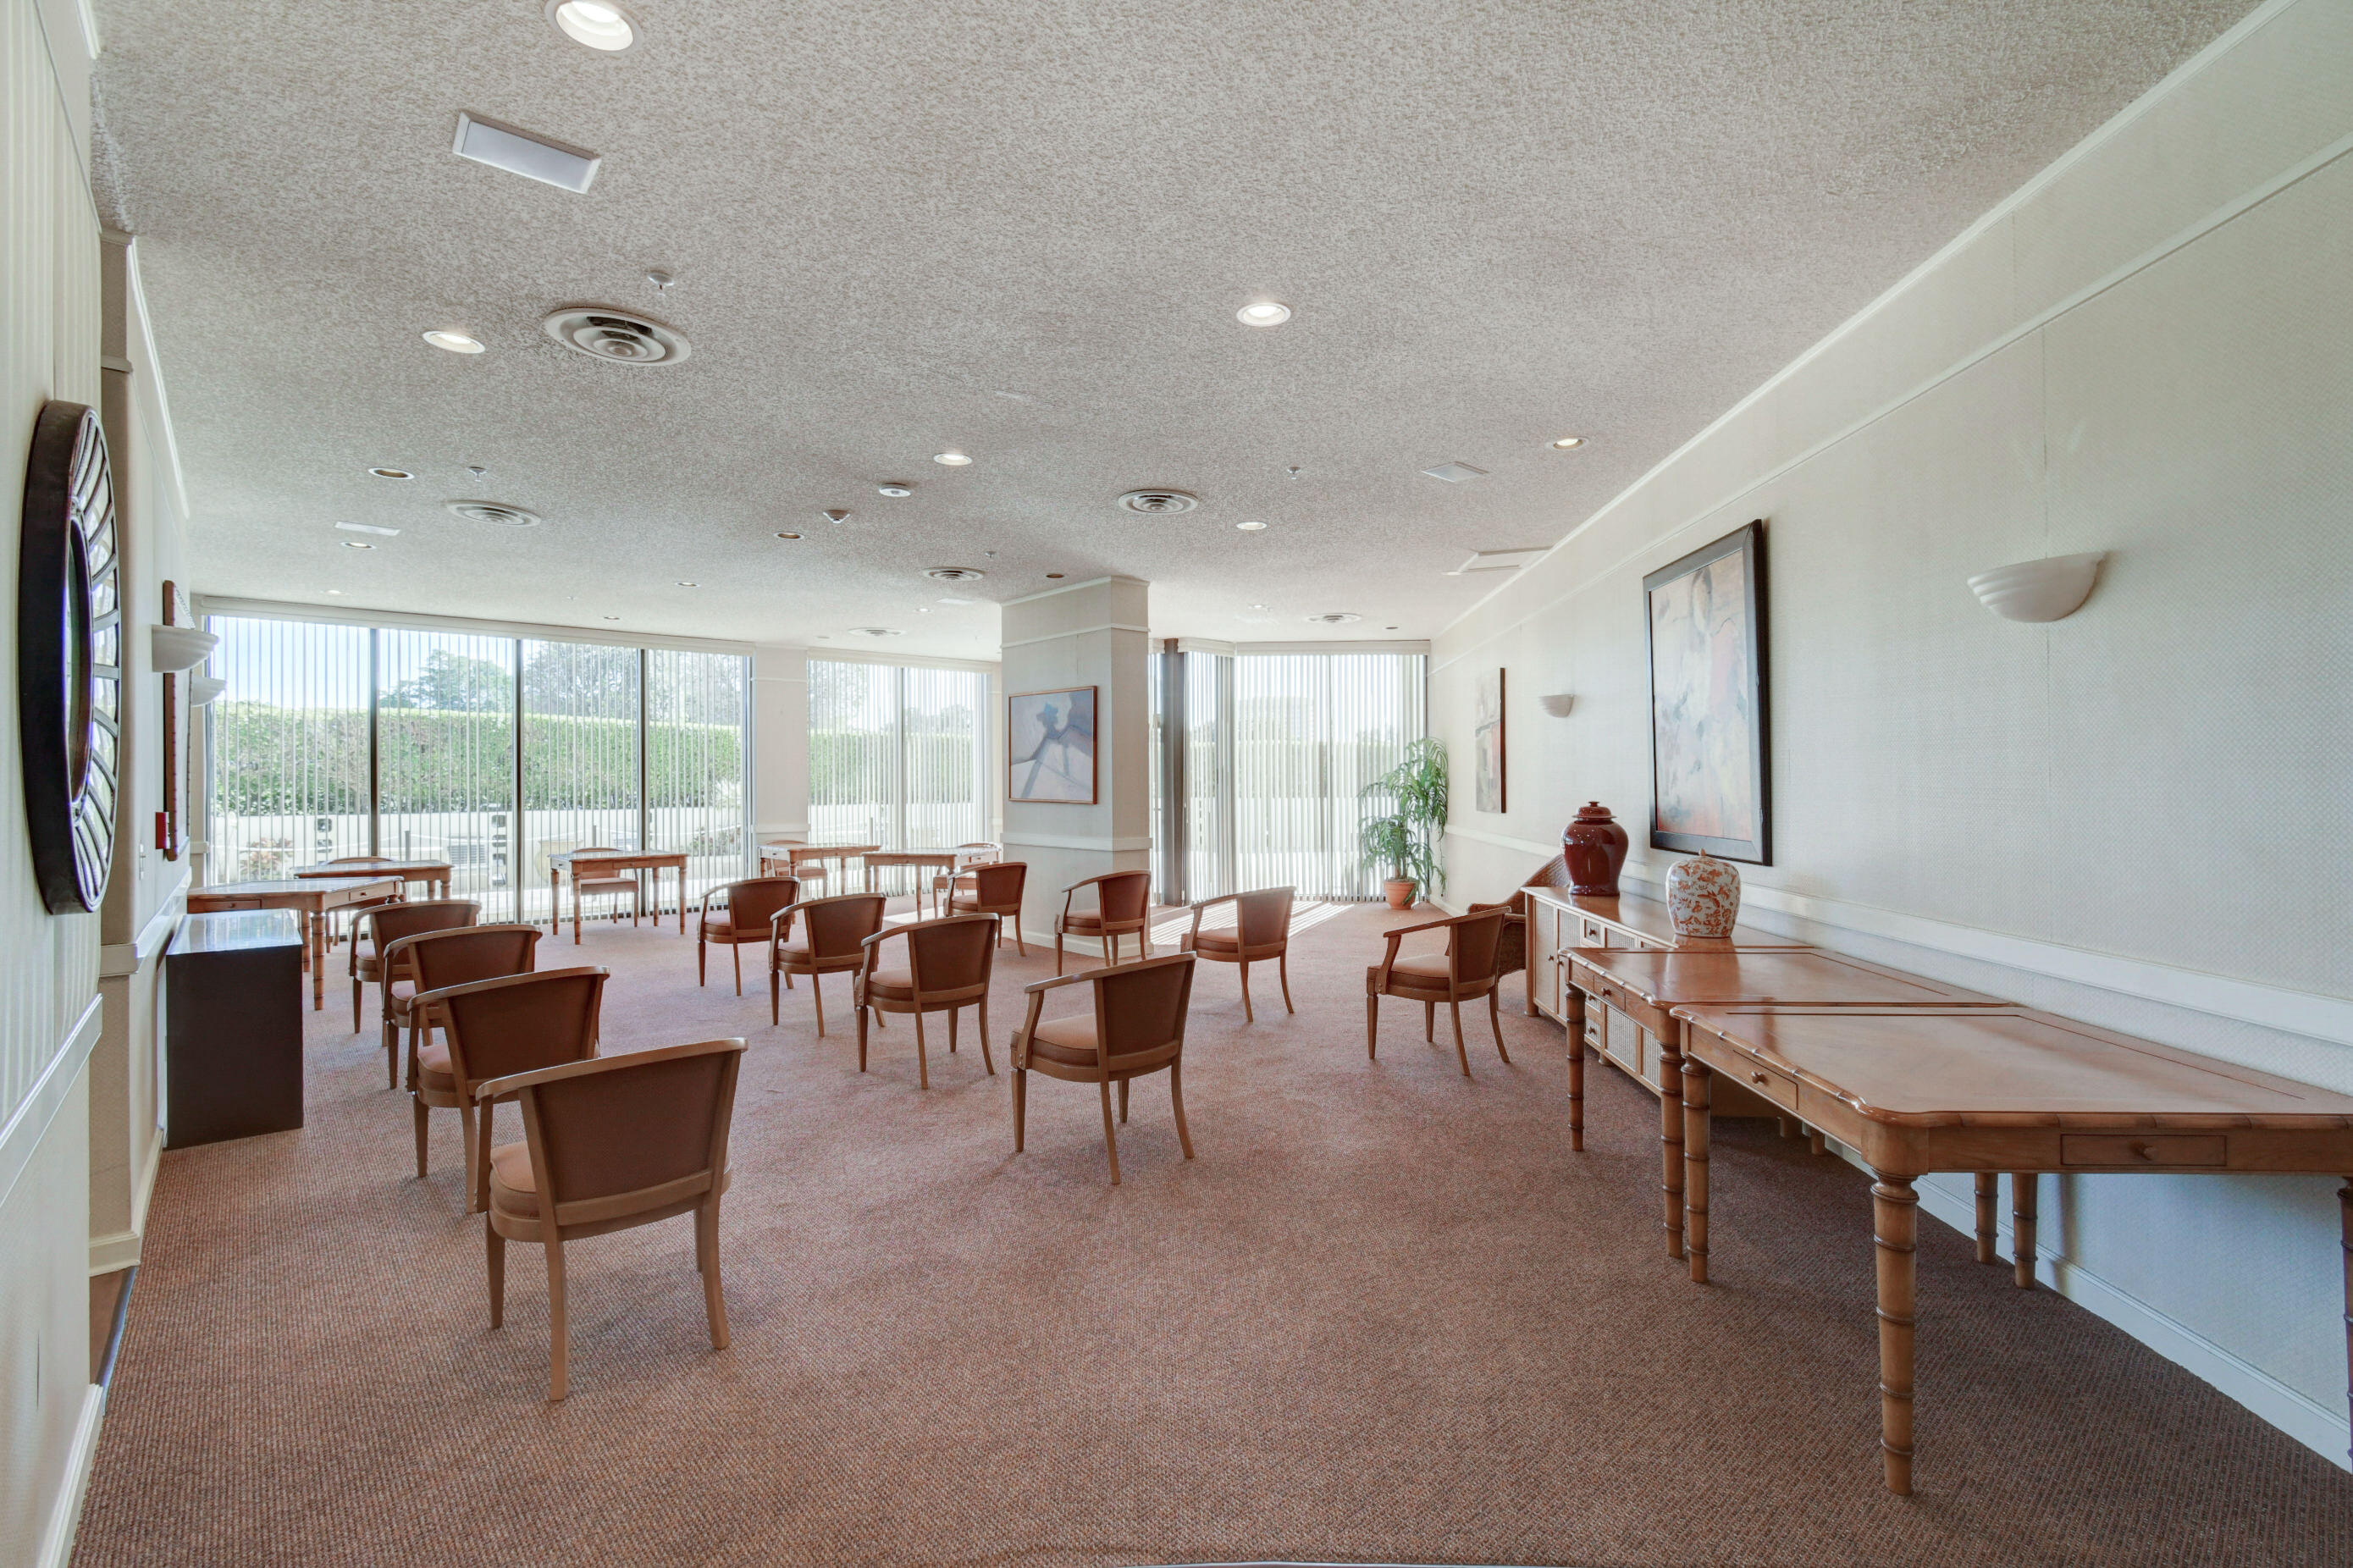 CONSULATE SOCIAL & MEETING ROOM